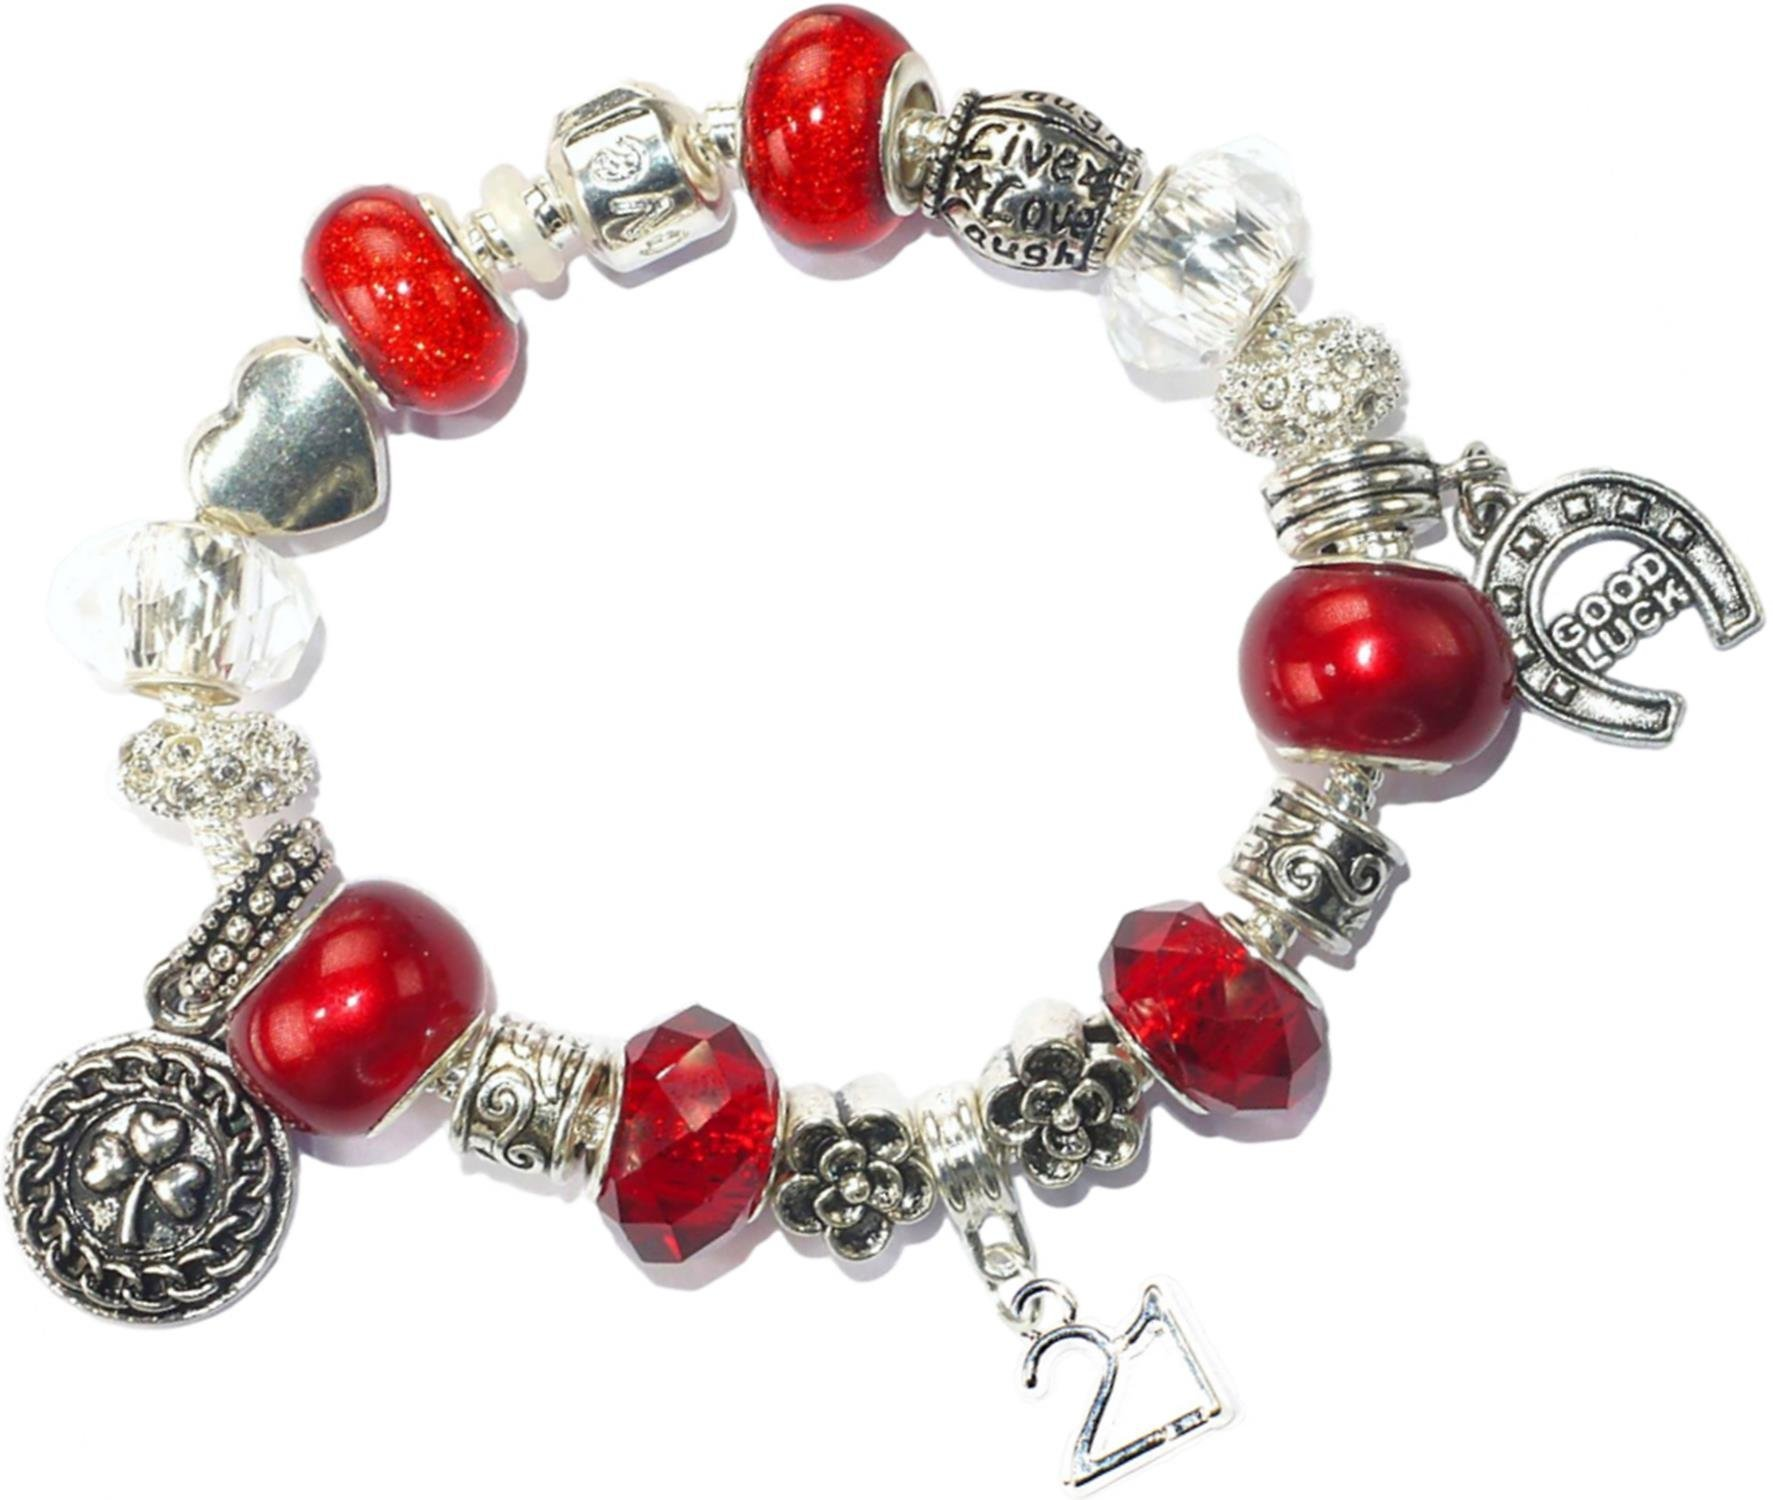 Charm Buddy 21St Birthday Good Luck Lucky Red Silver Pandora Style Bracelet With Charms Gift Box Jewelry